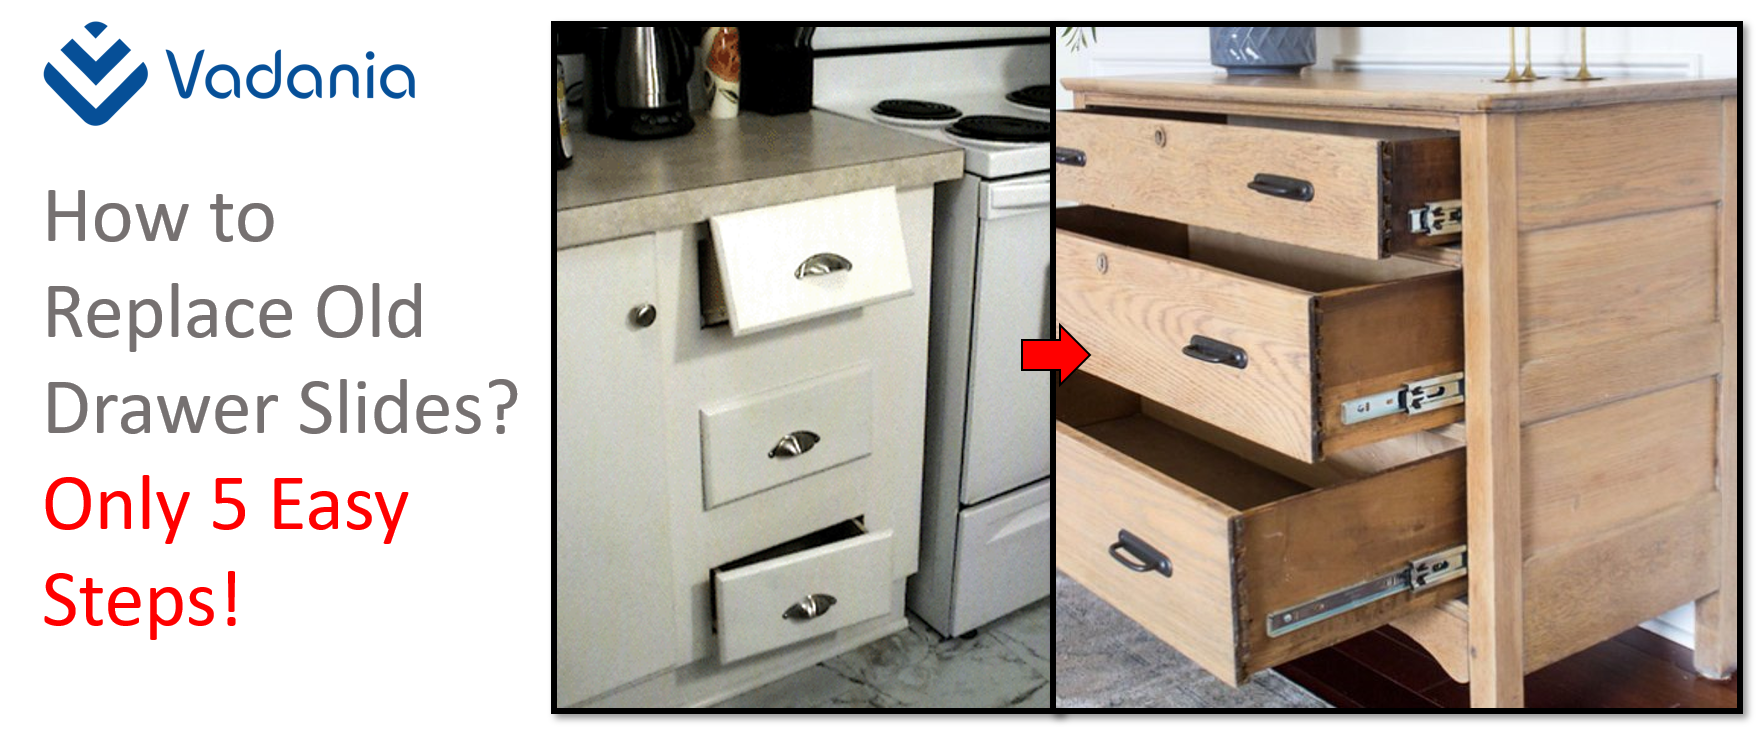 How to Replace Old Drawer Slides? Only 5 Easy Steps ...